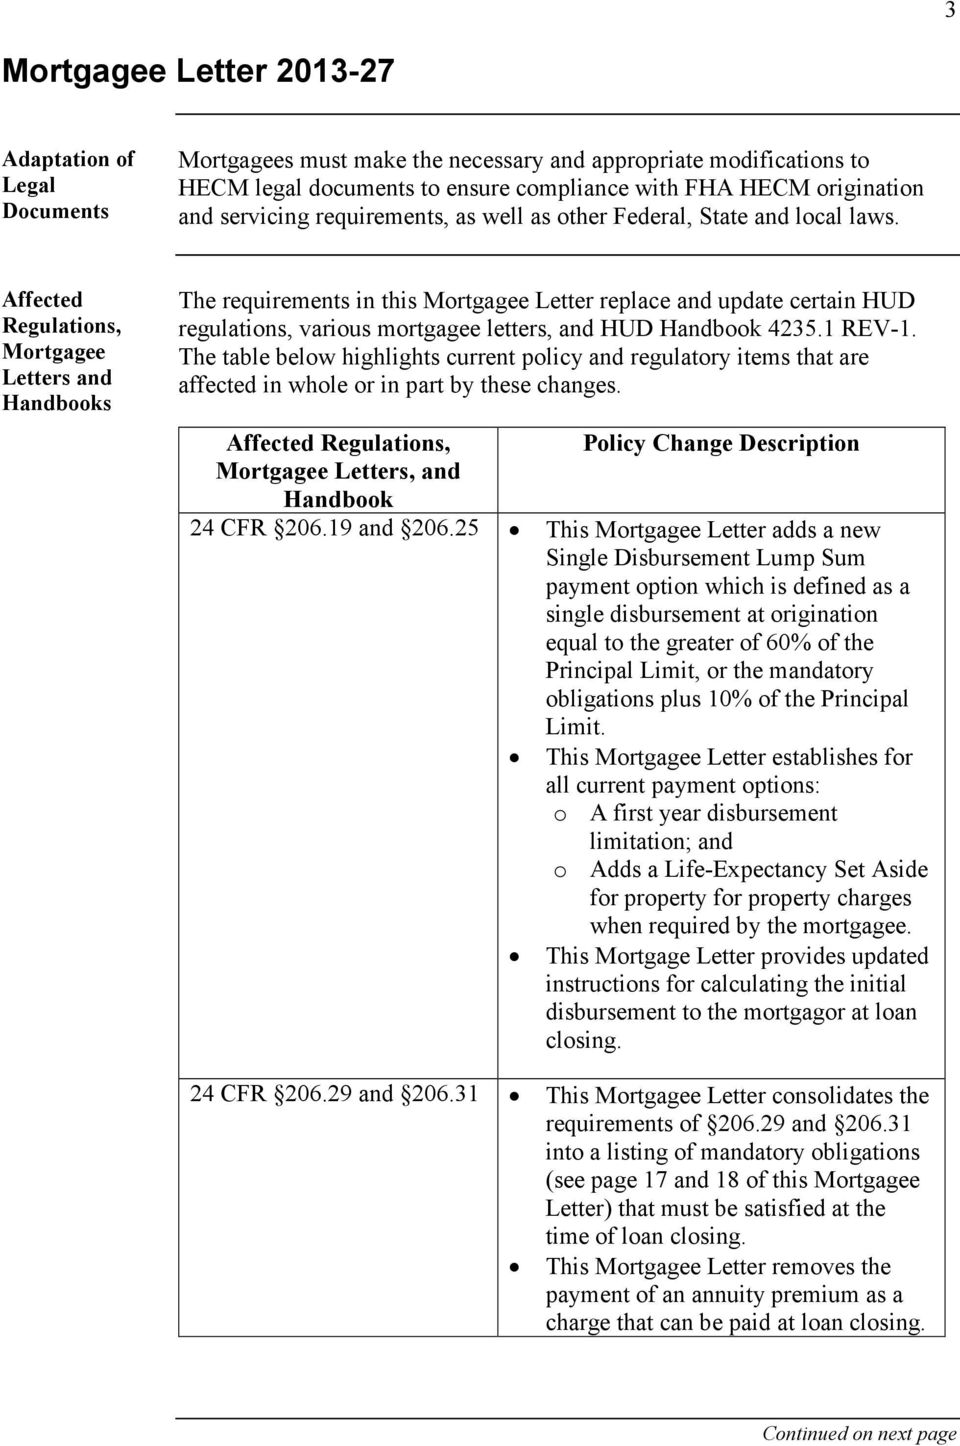 Affected Regulations, Mortgagee Letters and Handbooks The requirements in this Mortgagee Letter replace and update certain HUD regulations, various mortgagee letters, and HUD Handbook 4235.1 REV-1.